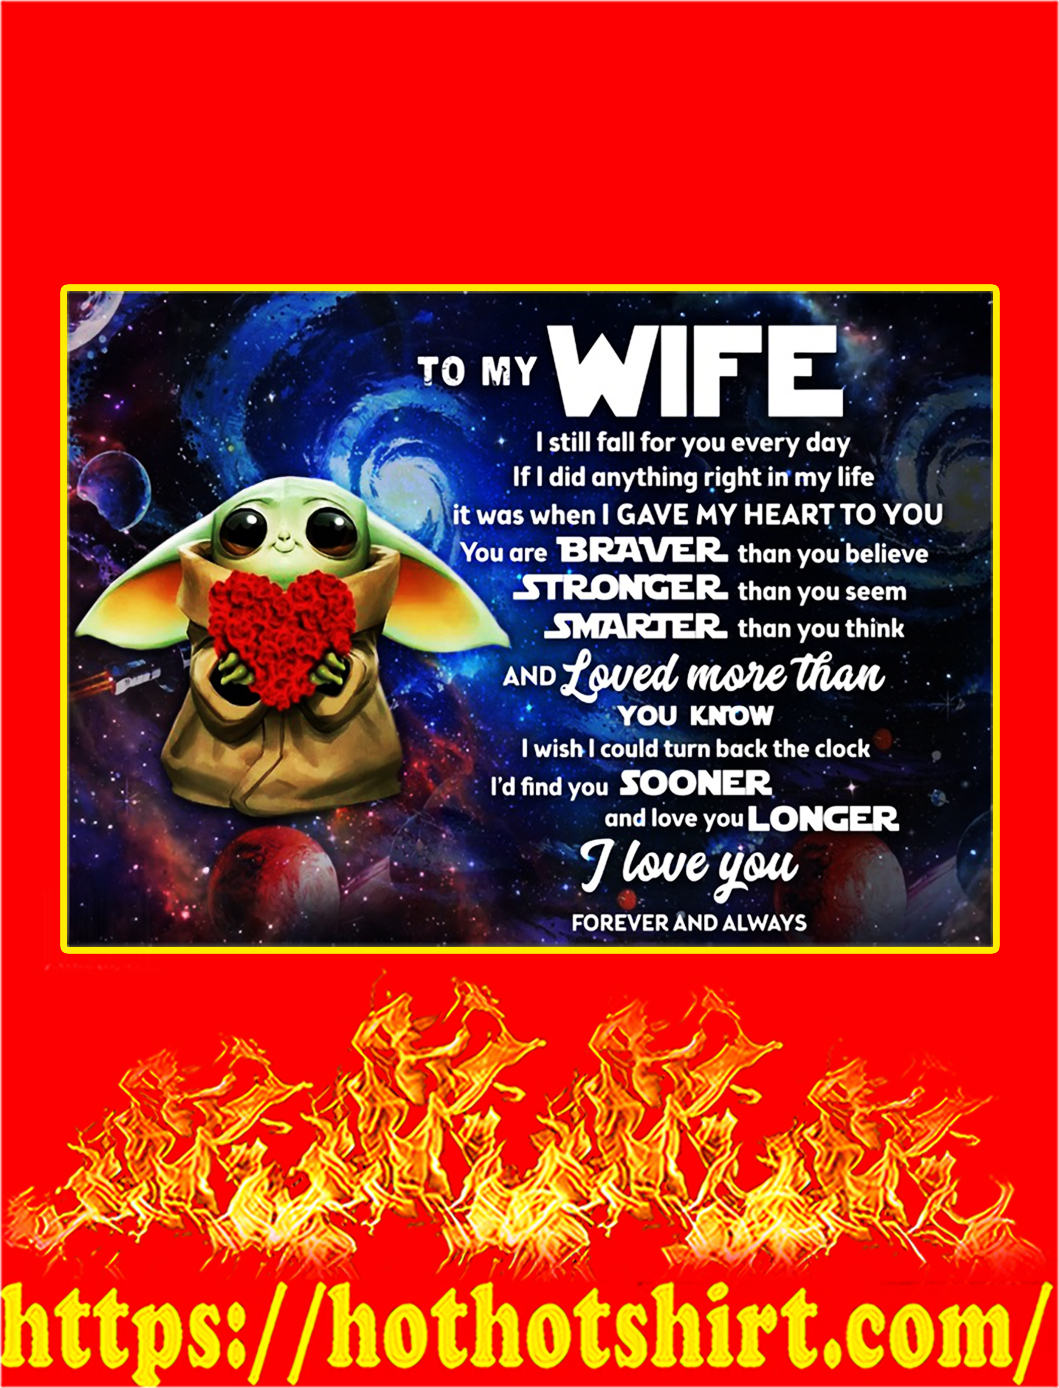 Baby yoda to my wife poster - A2